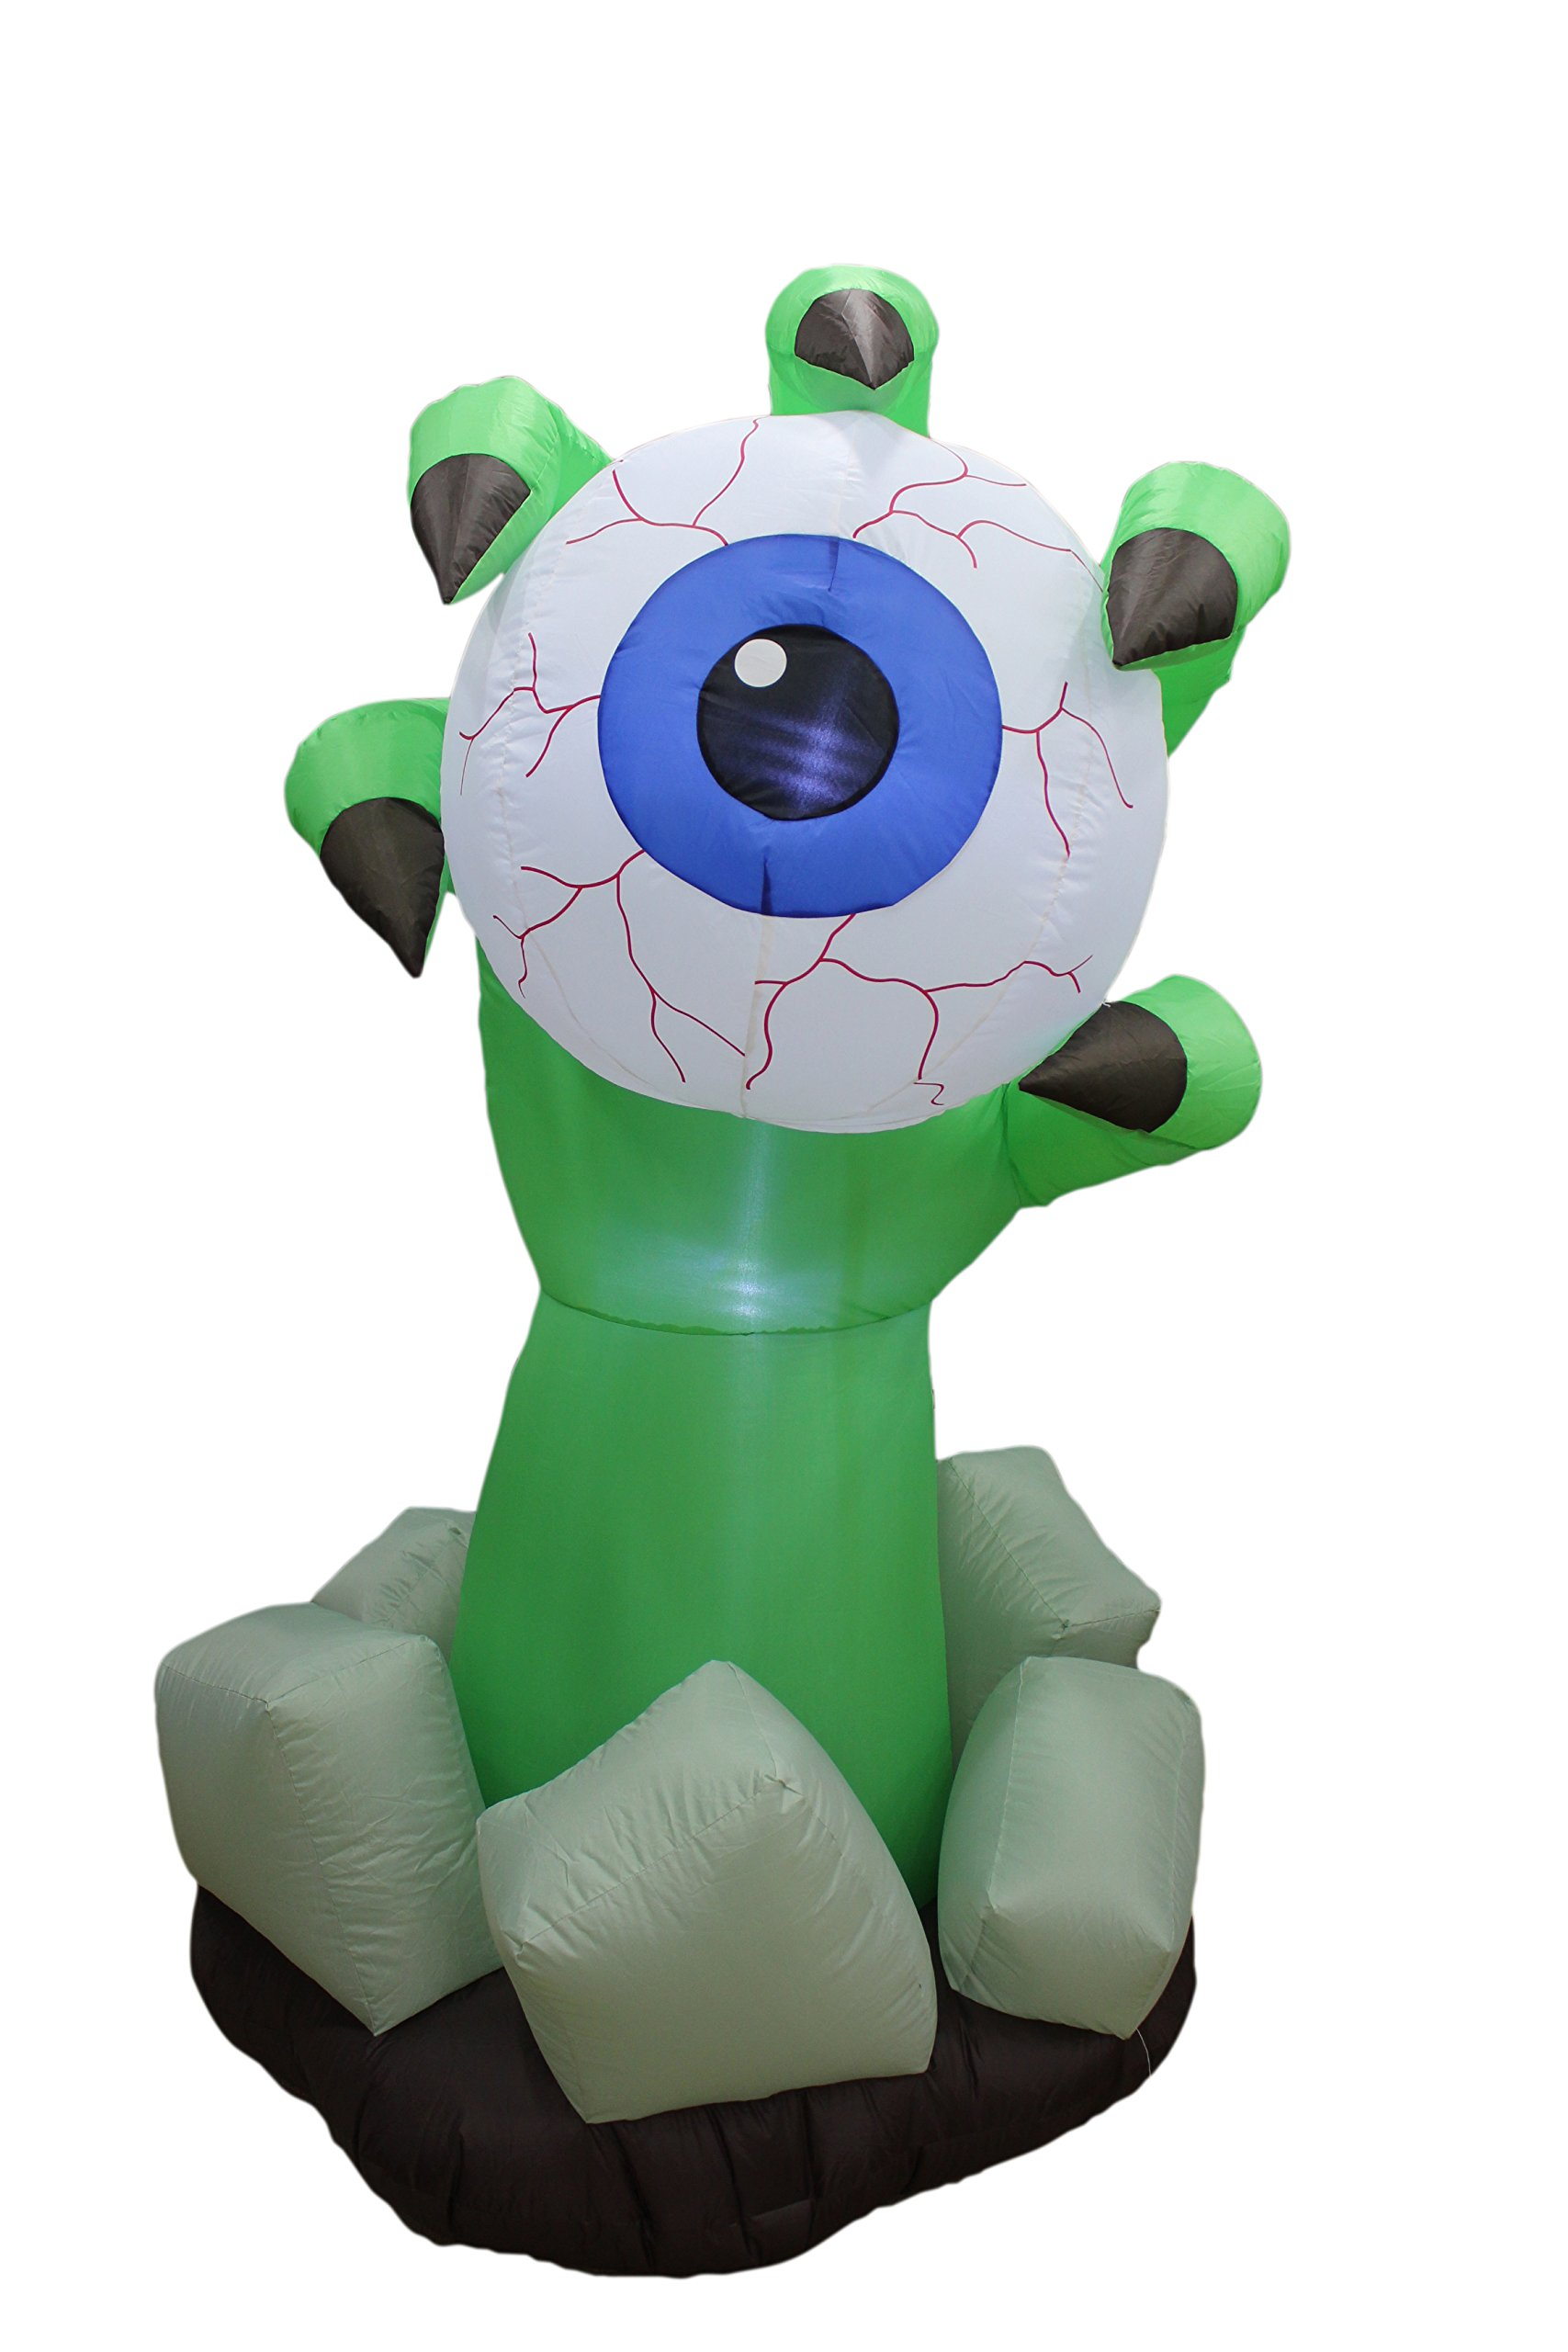 BZB Goods 6 Foot Illuminated Halloween Inflatable Monster Claw with Blue Eyeball Decoration